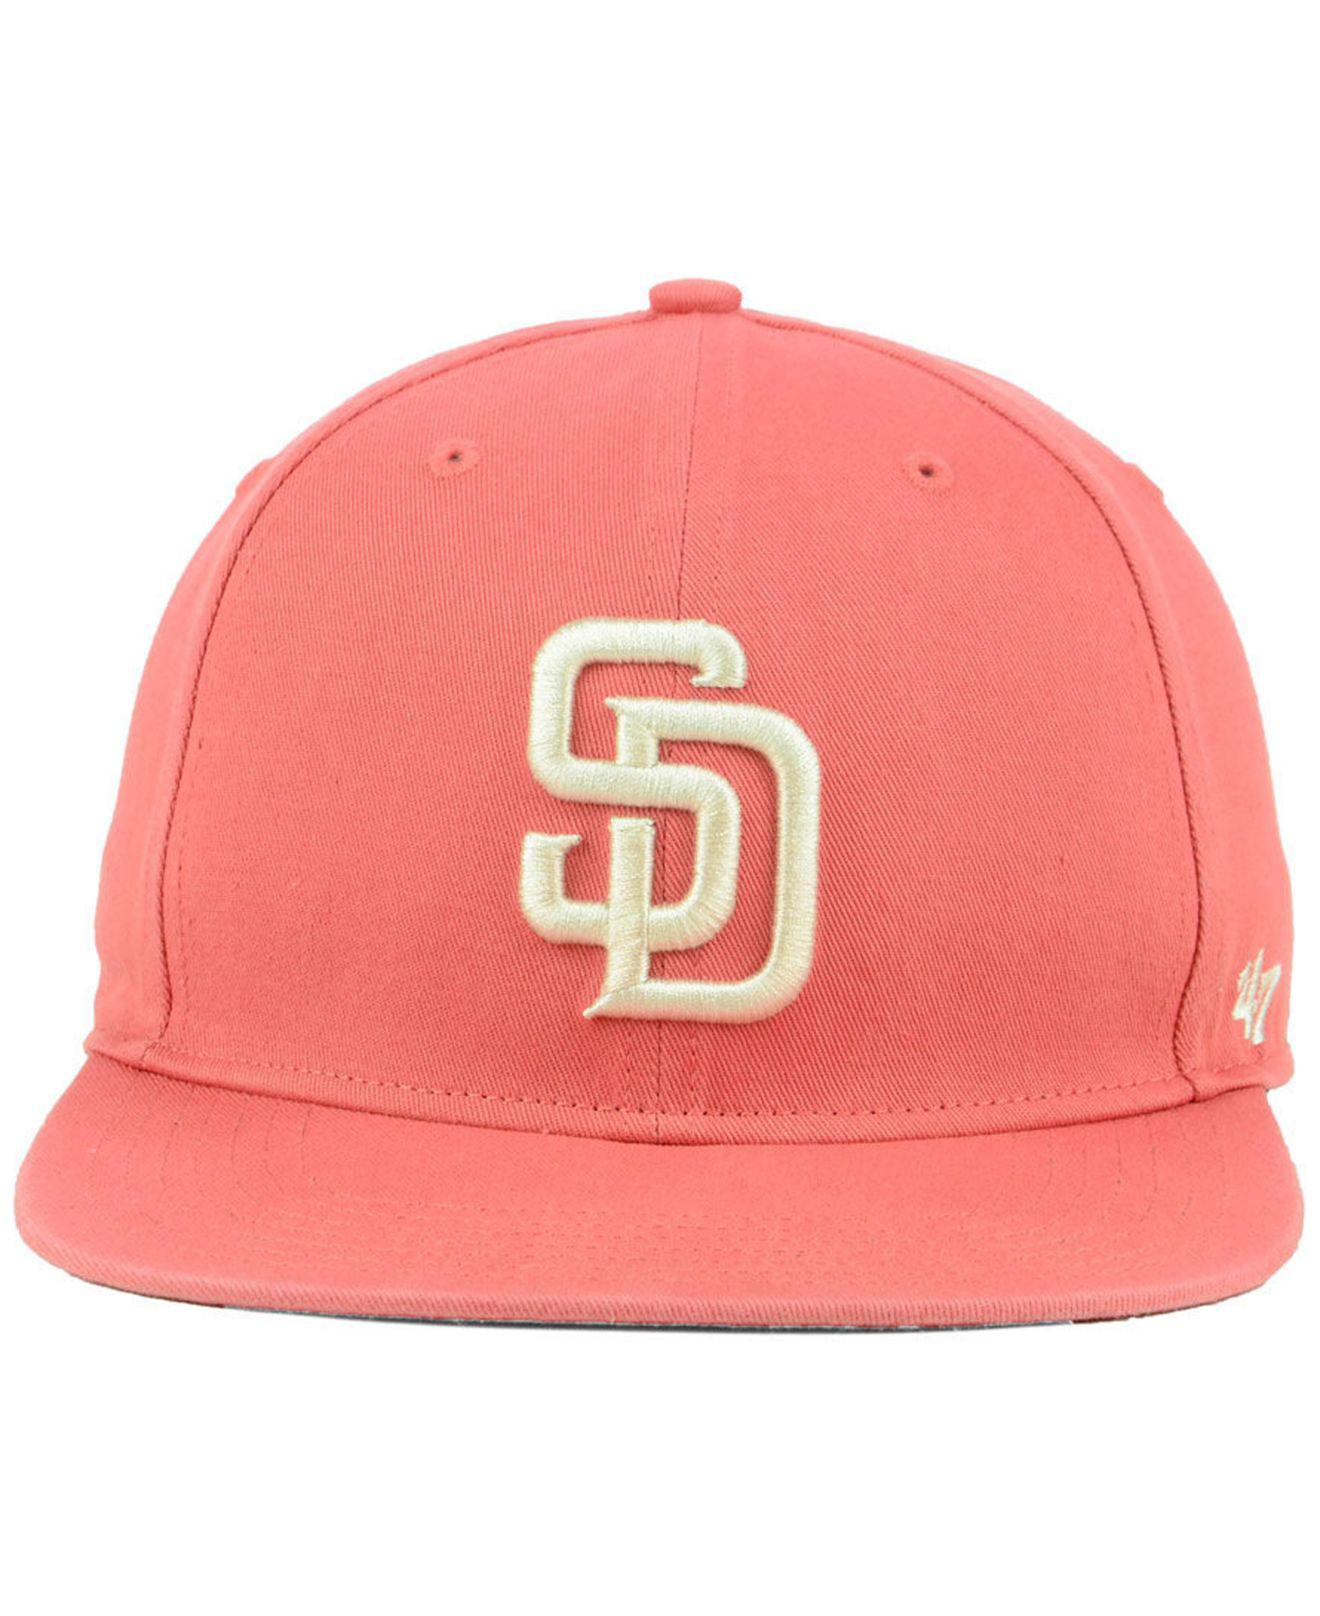 a4e66f64352f38 Lyst - 47 Brand San Diego Padres Island Snapback Cap in Pink